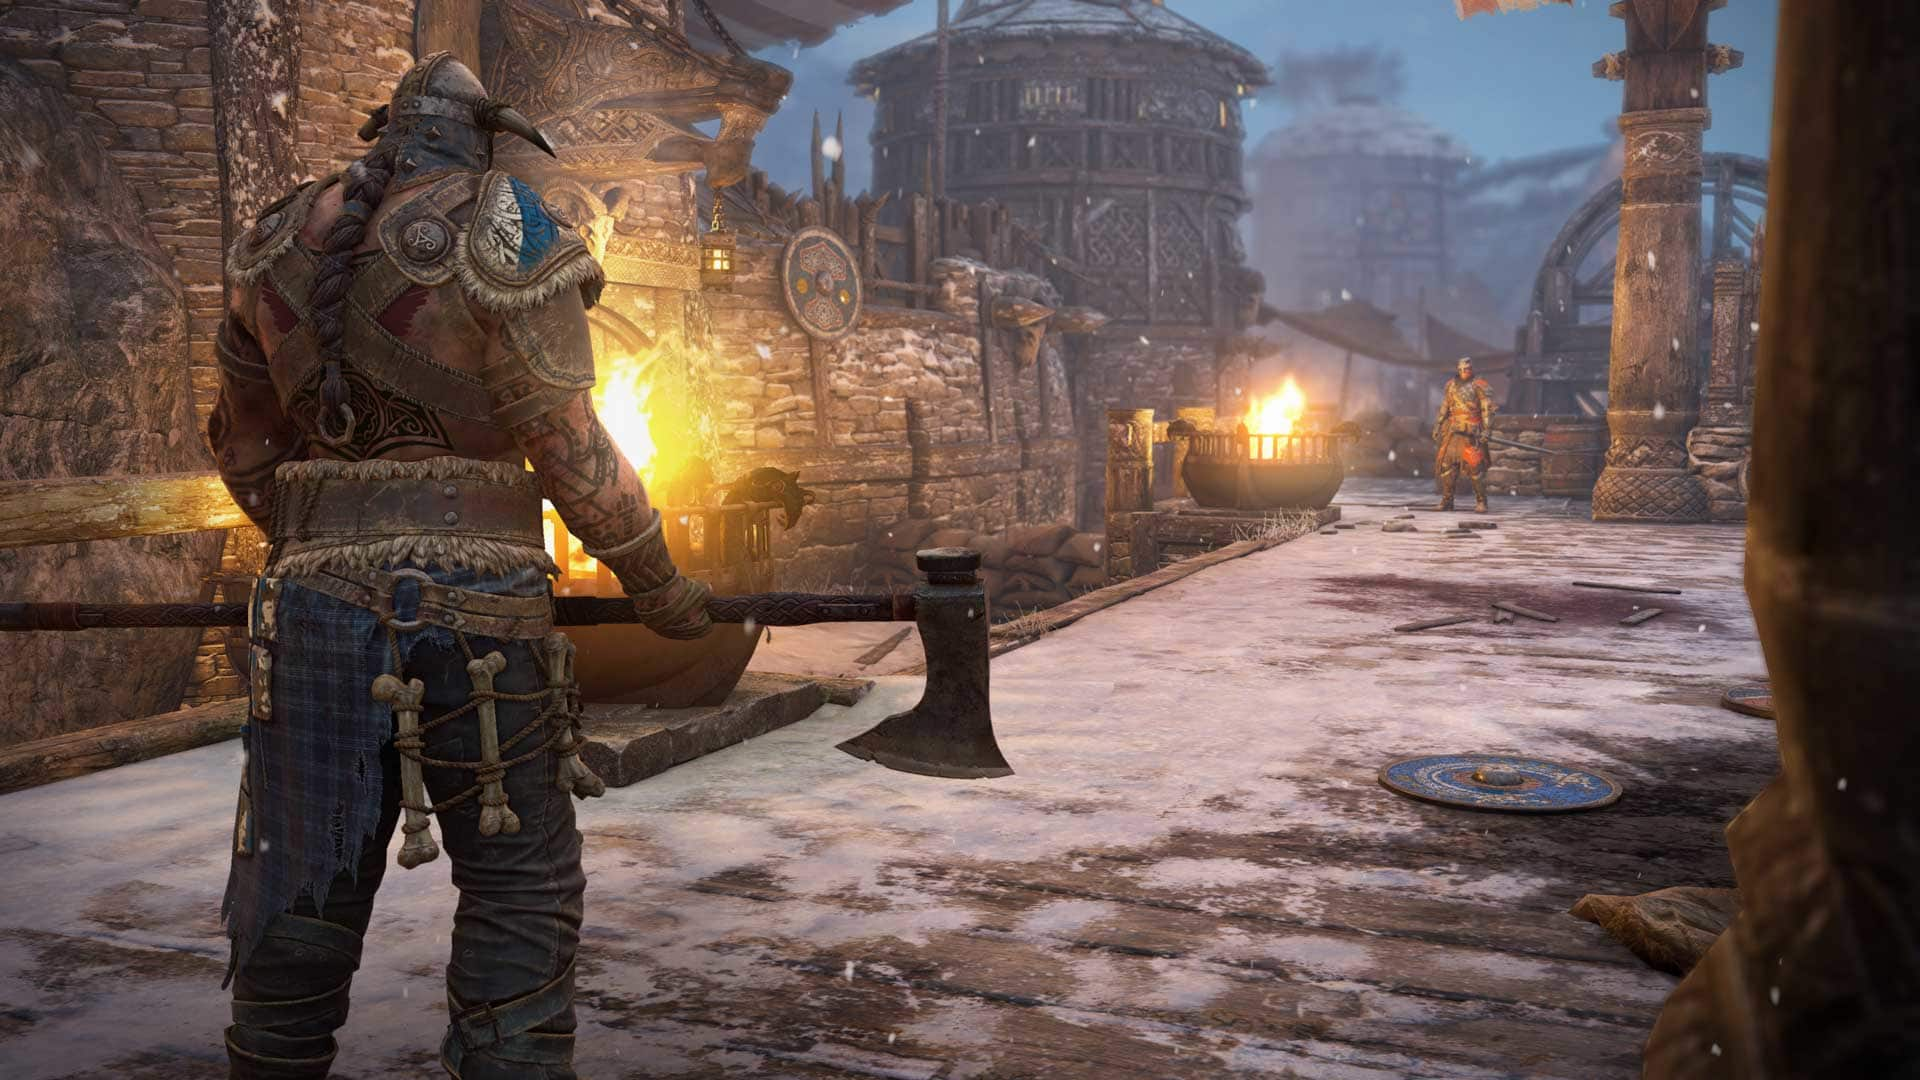 1920x1080 How to Play For Honor: The Complete Getting Started Guide - Blogs ...